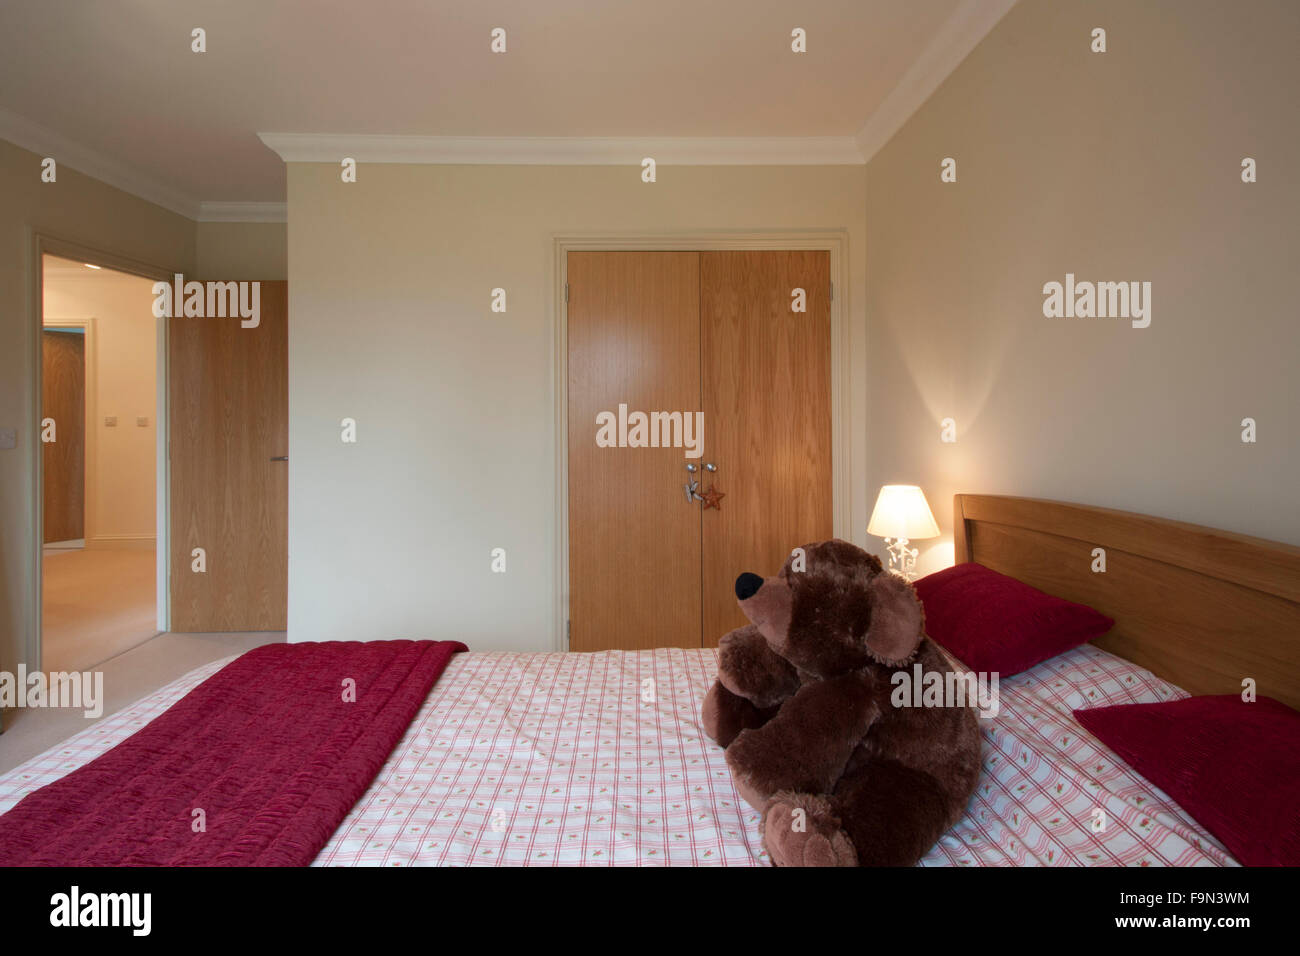 Guest bedroom with a red colour scheme Stock Photo, Royalty Free ...